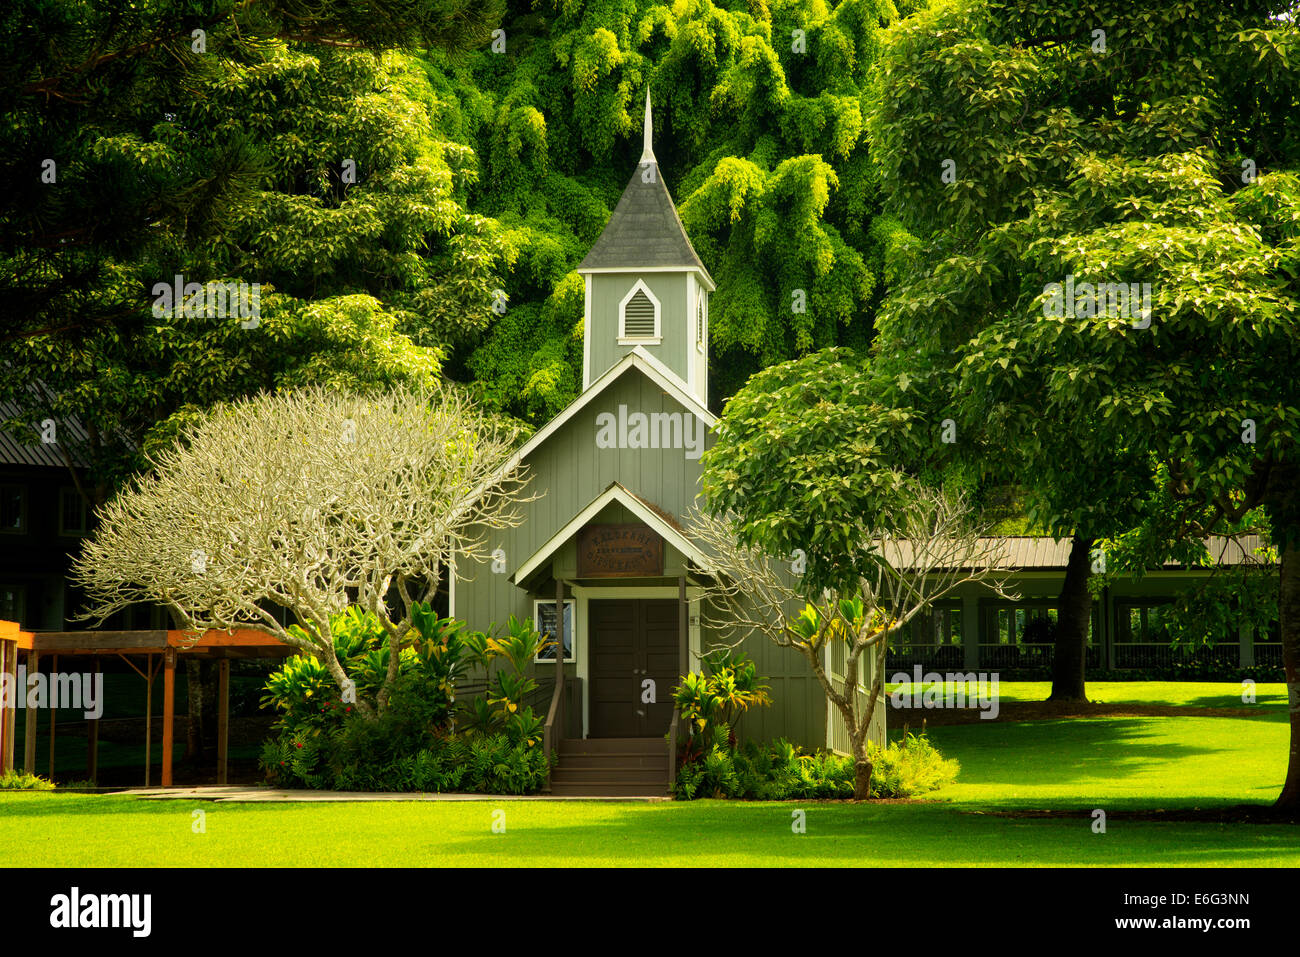 Church at Four Seasons Lodge at Koele. Lanai, Hawaii. - Stock Image